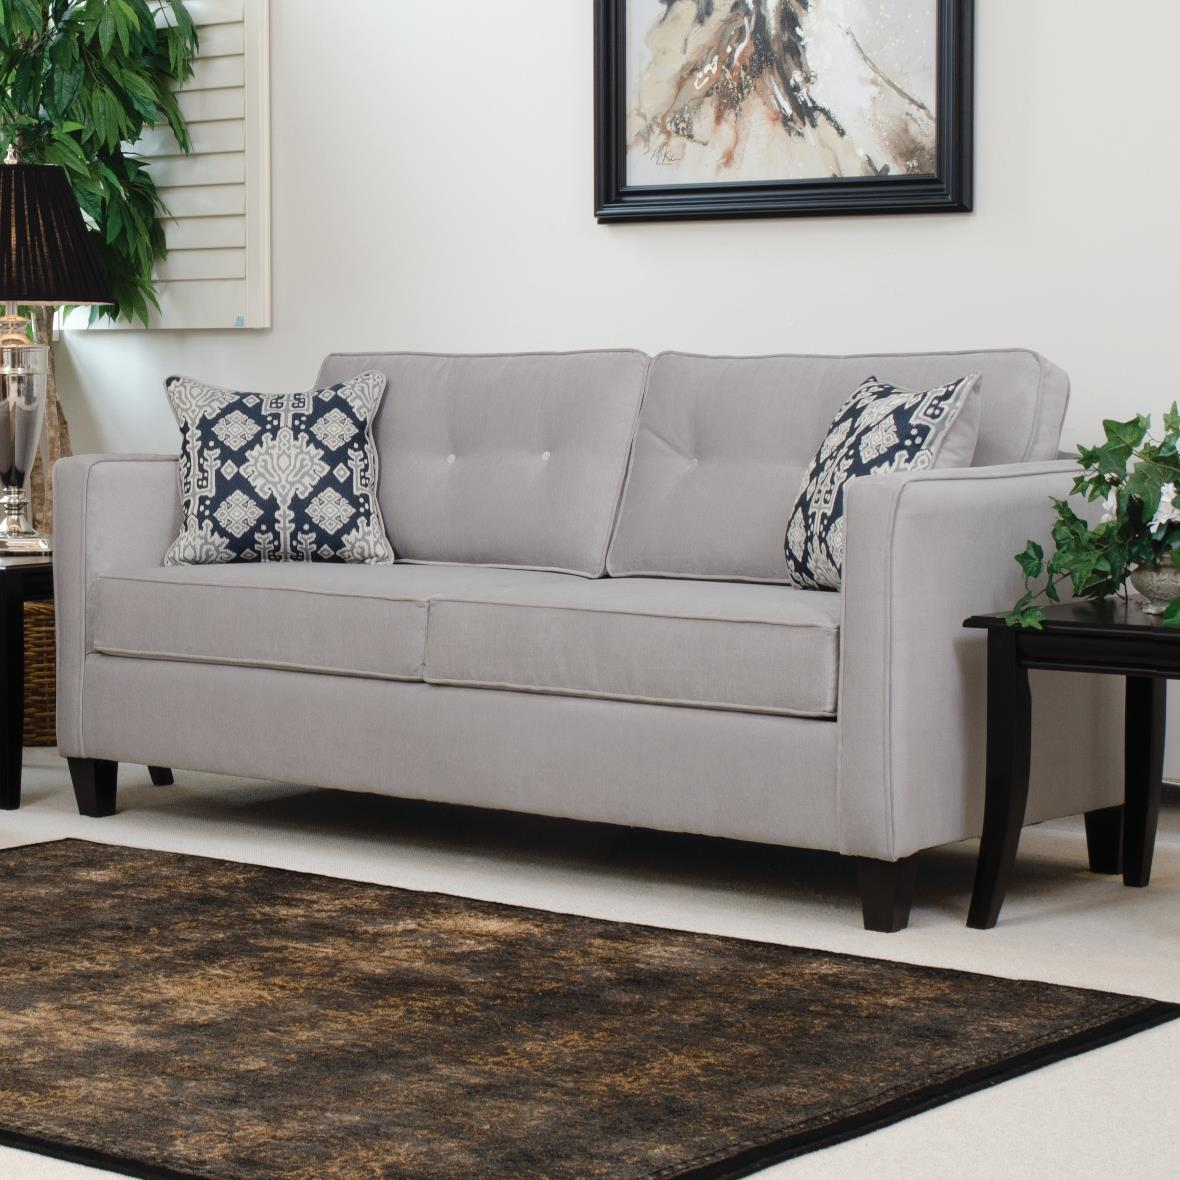 Serta upholstery by hughes furniture 1375 sofa stoney for B furniture toronto